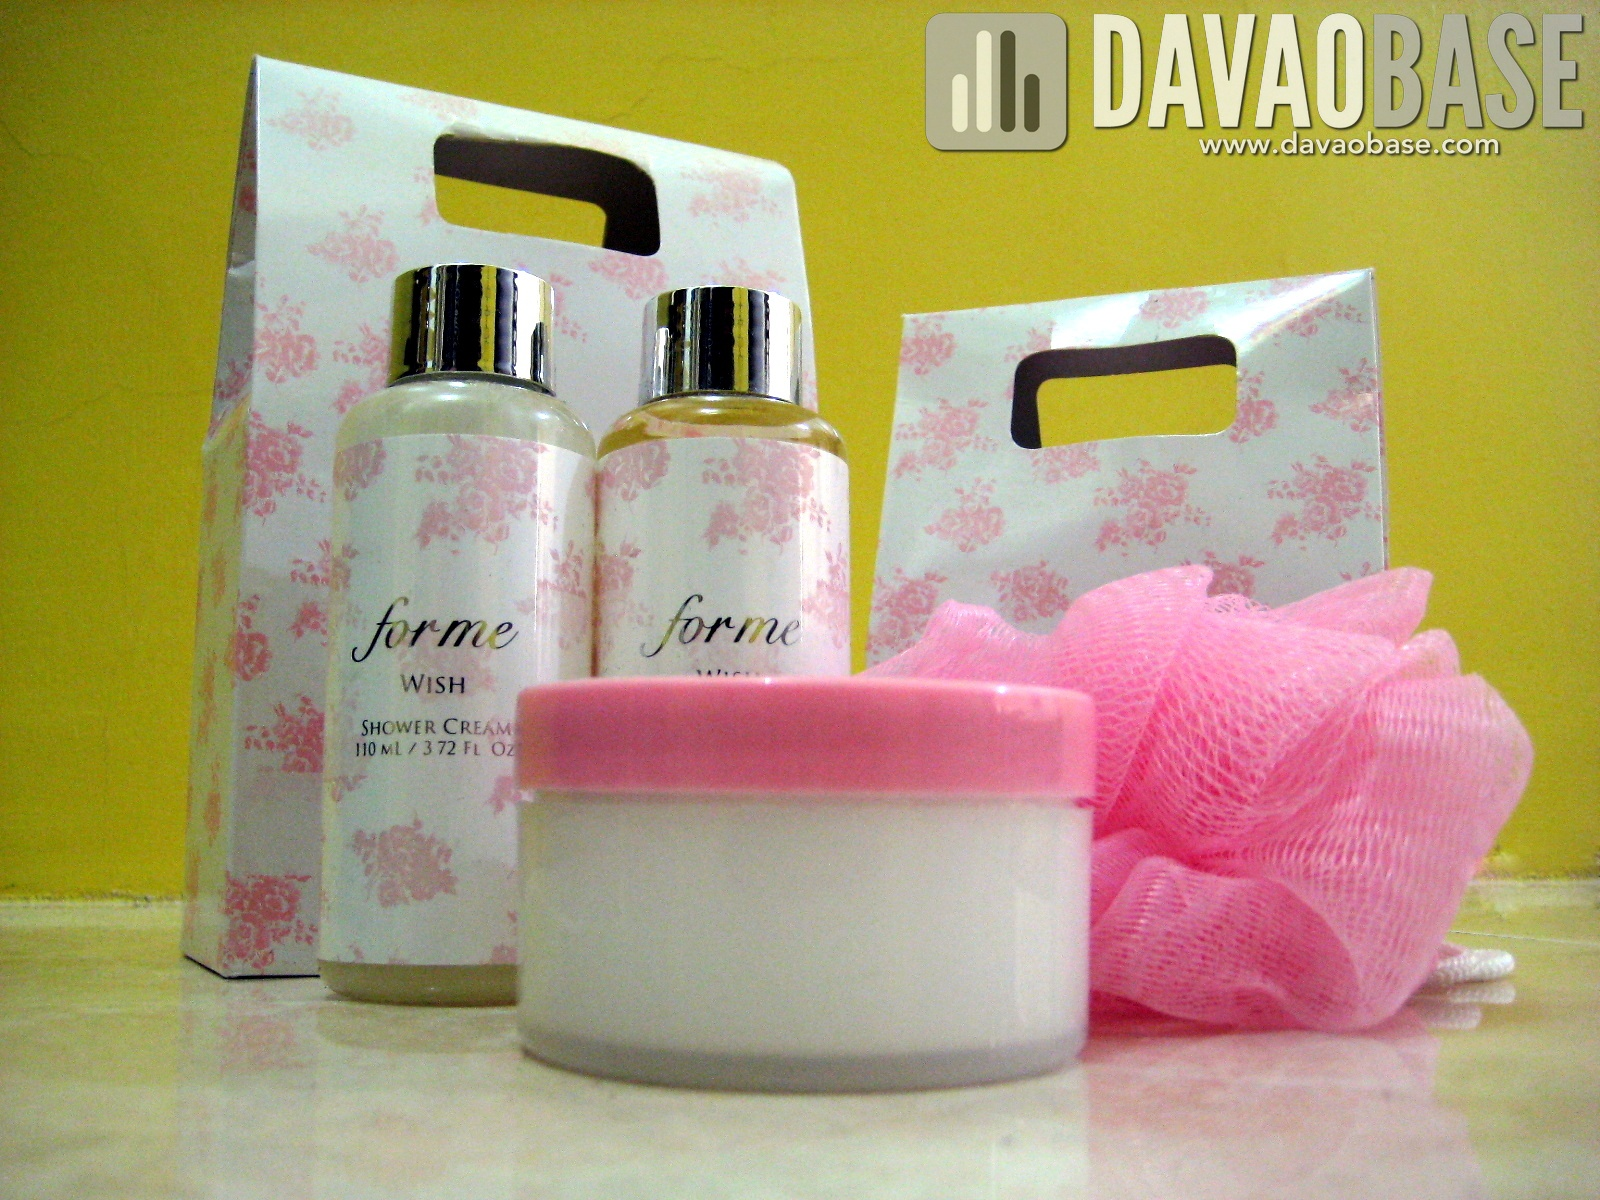 ForMe Wish products: shower cream, body oil, budy puff, and hand and body cream